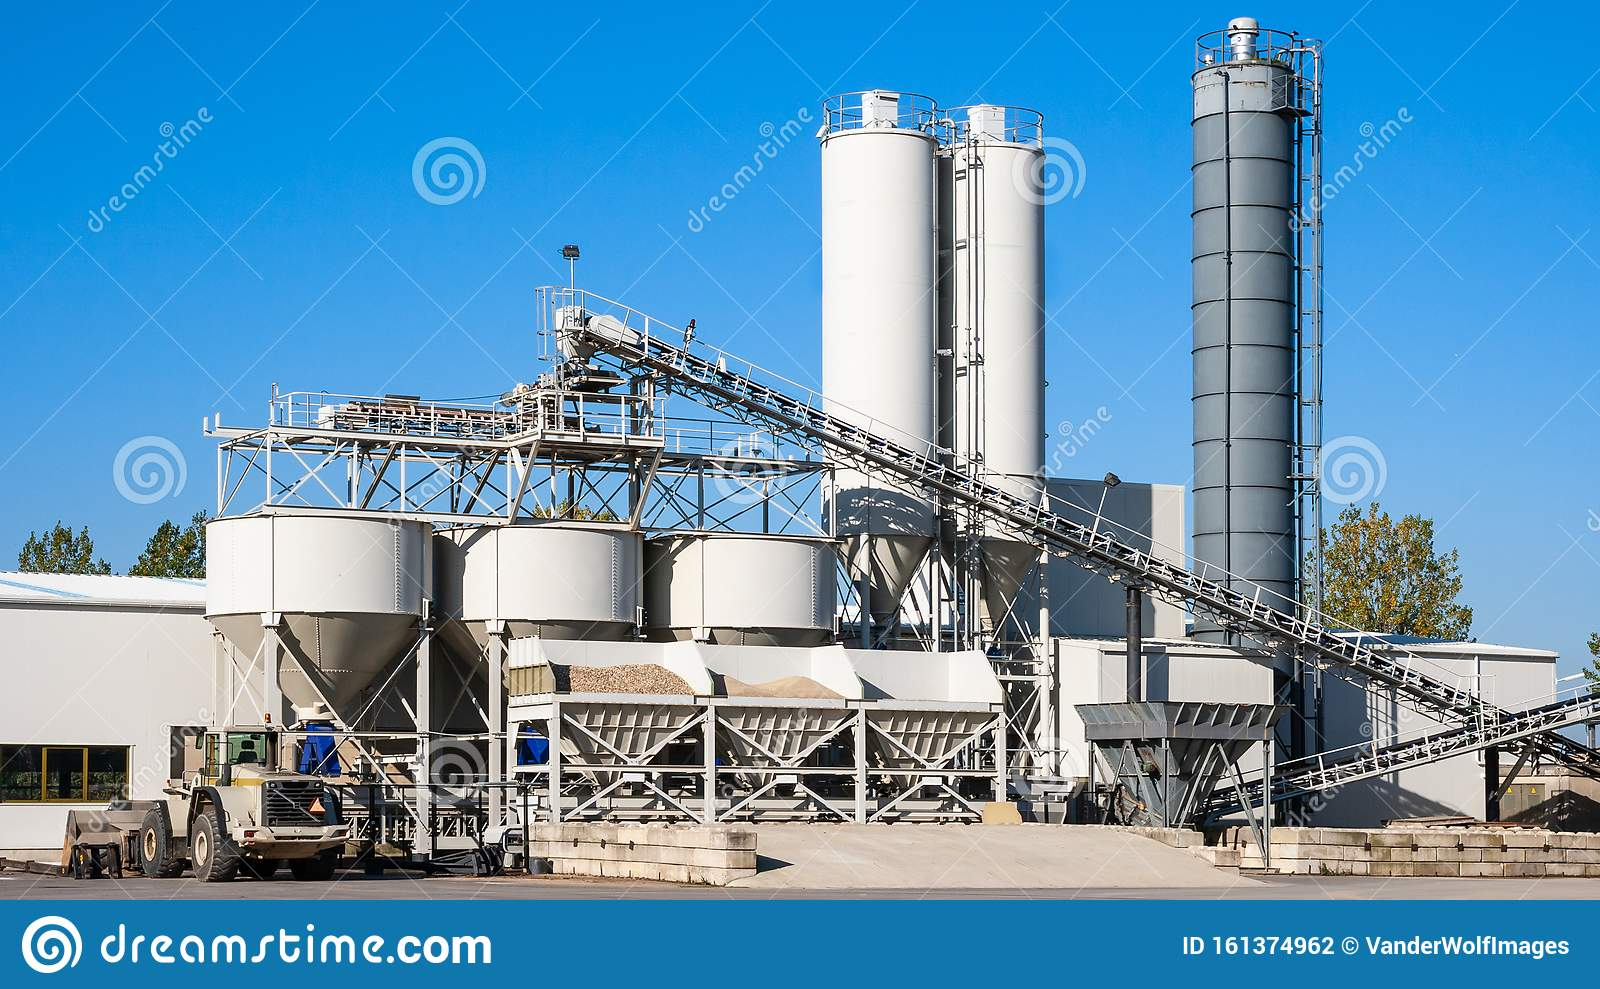 Construction Industry Concrete Plant And Equipment Stock